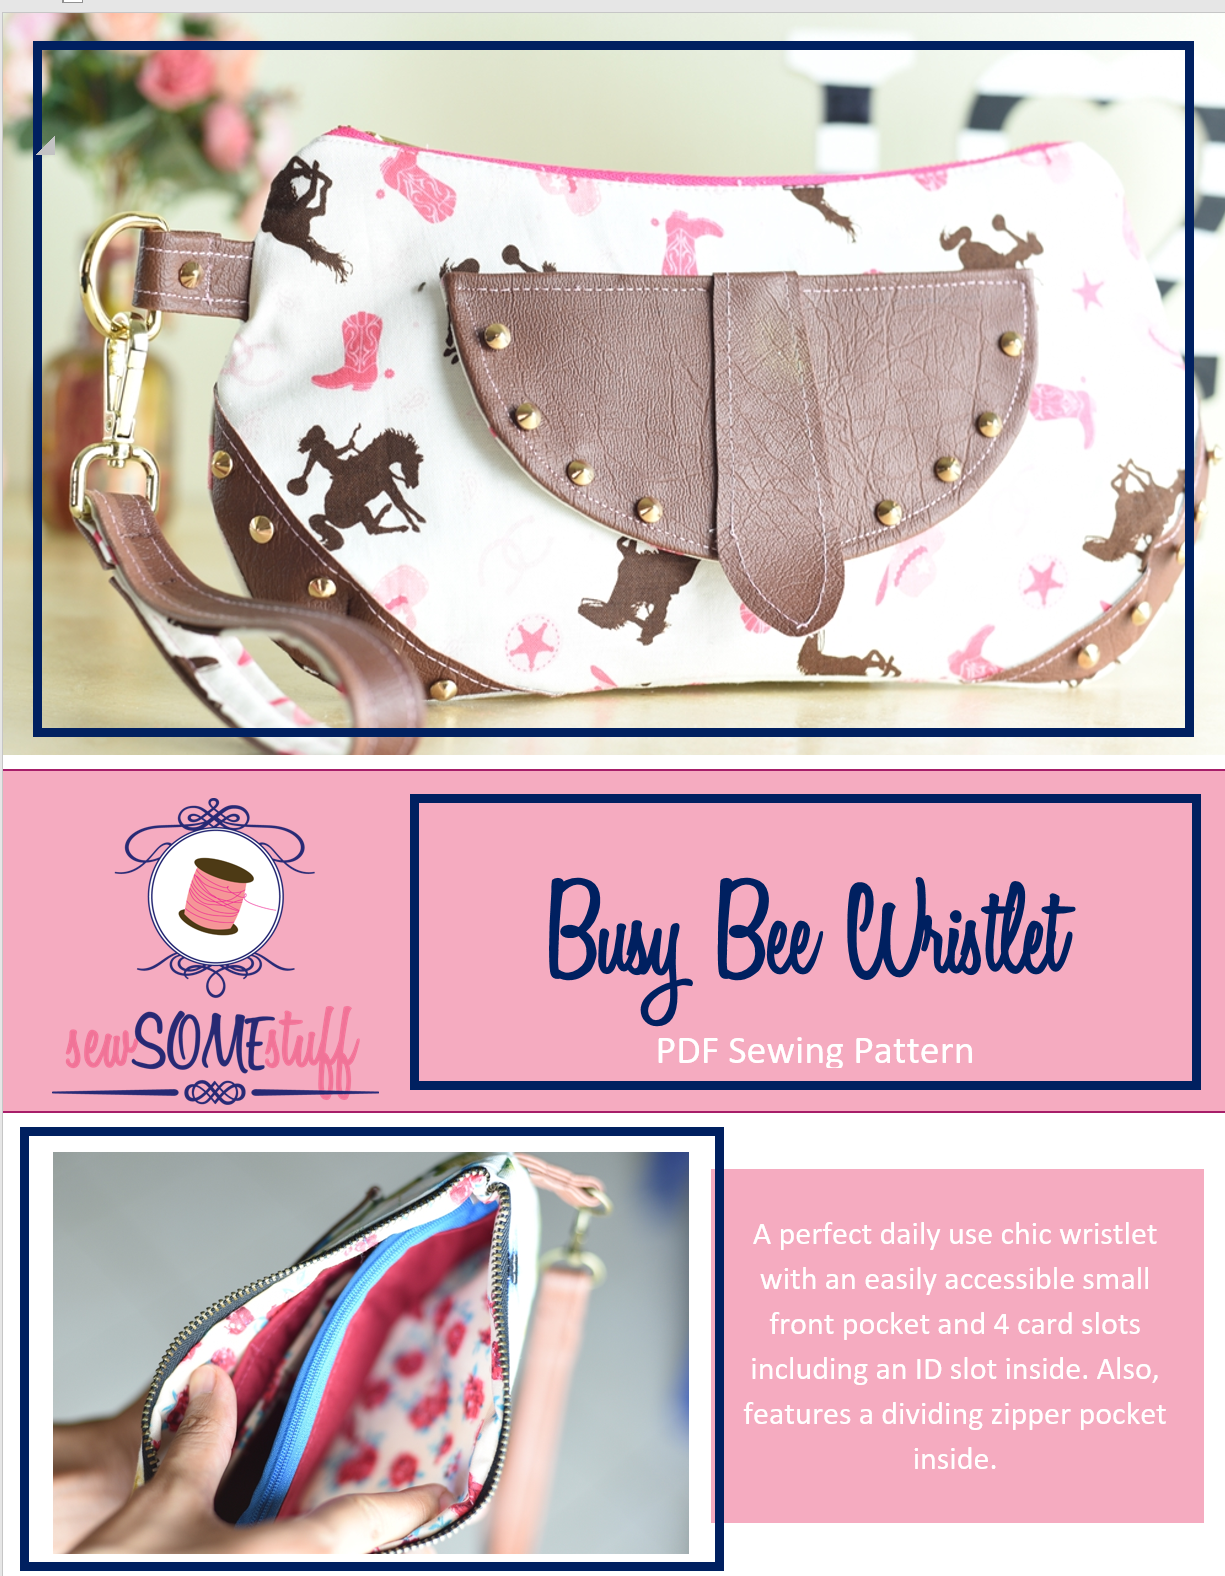 busy bee wristlet sewing pattern | bag sewing patterns | purse patterns | handbag patterns